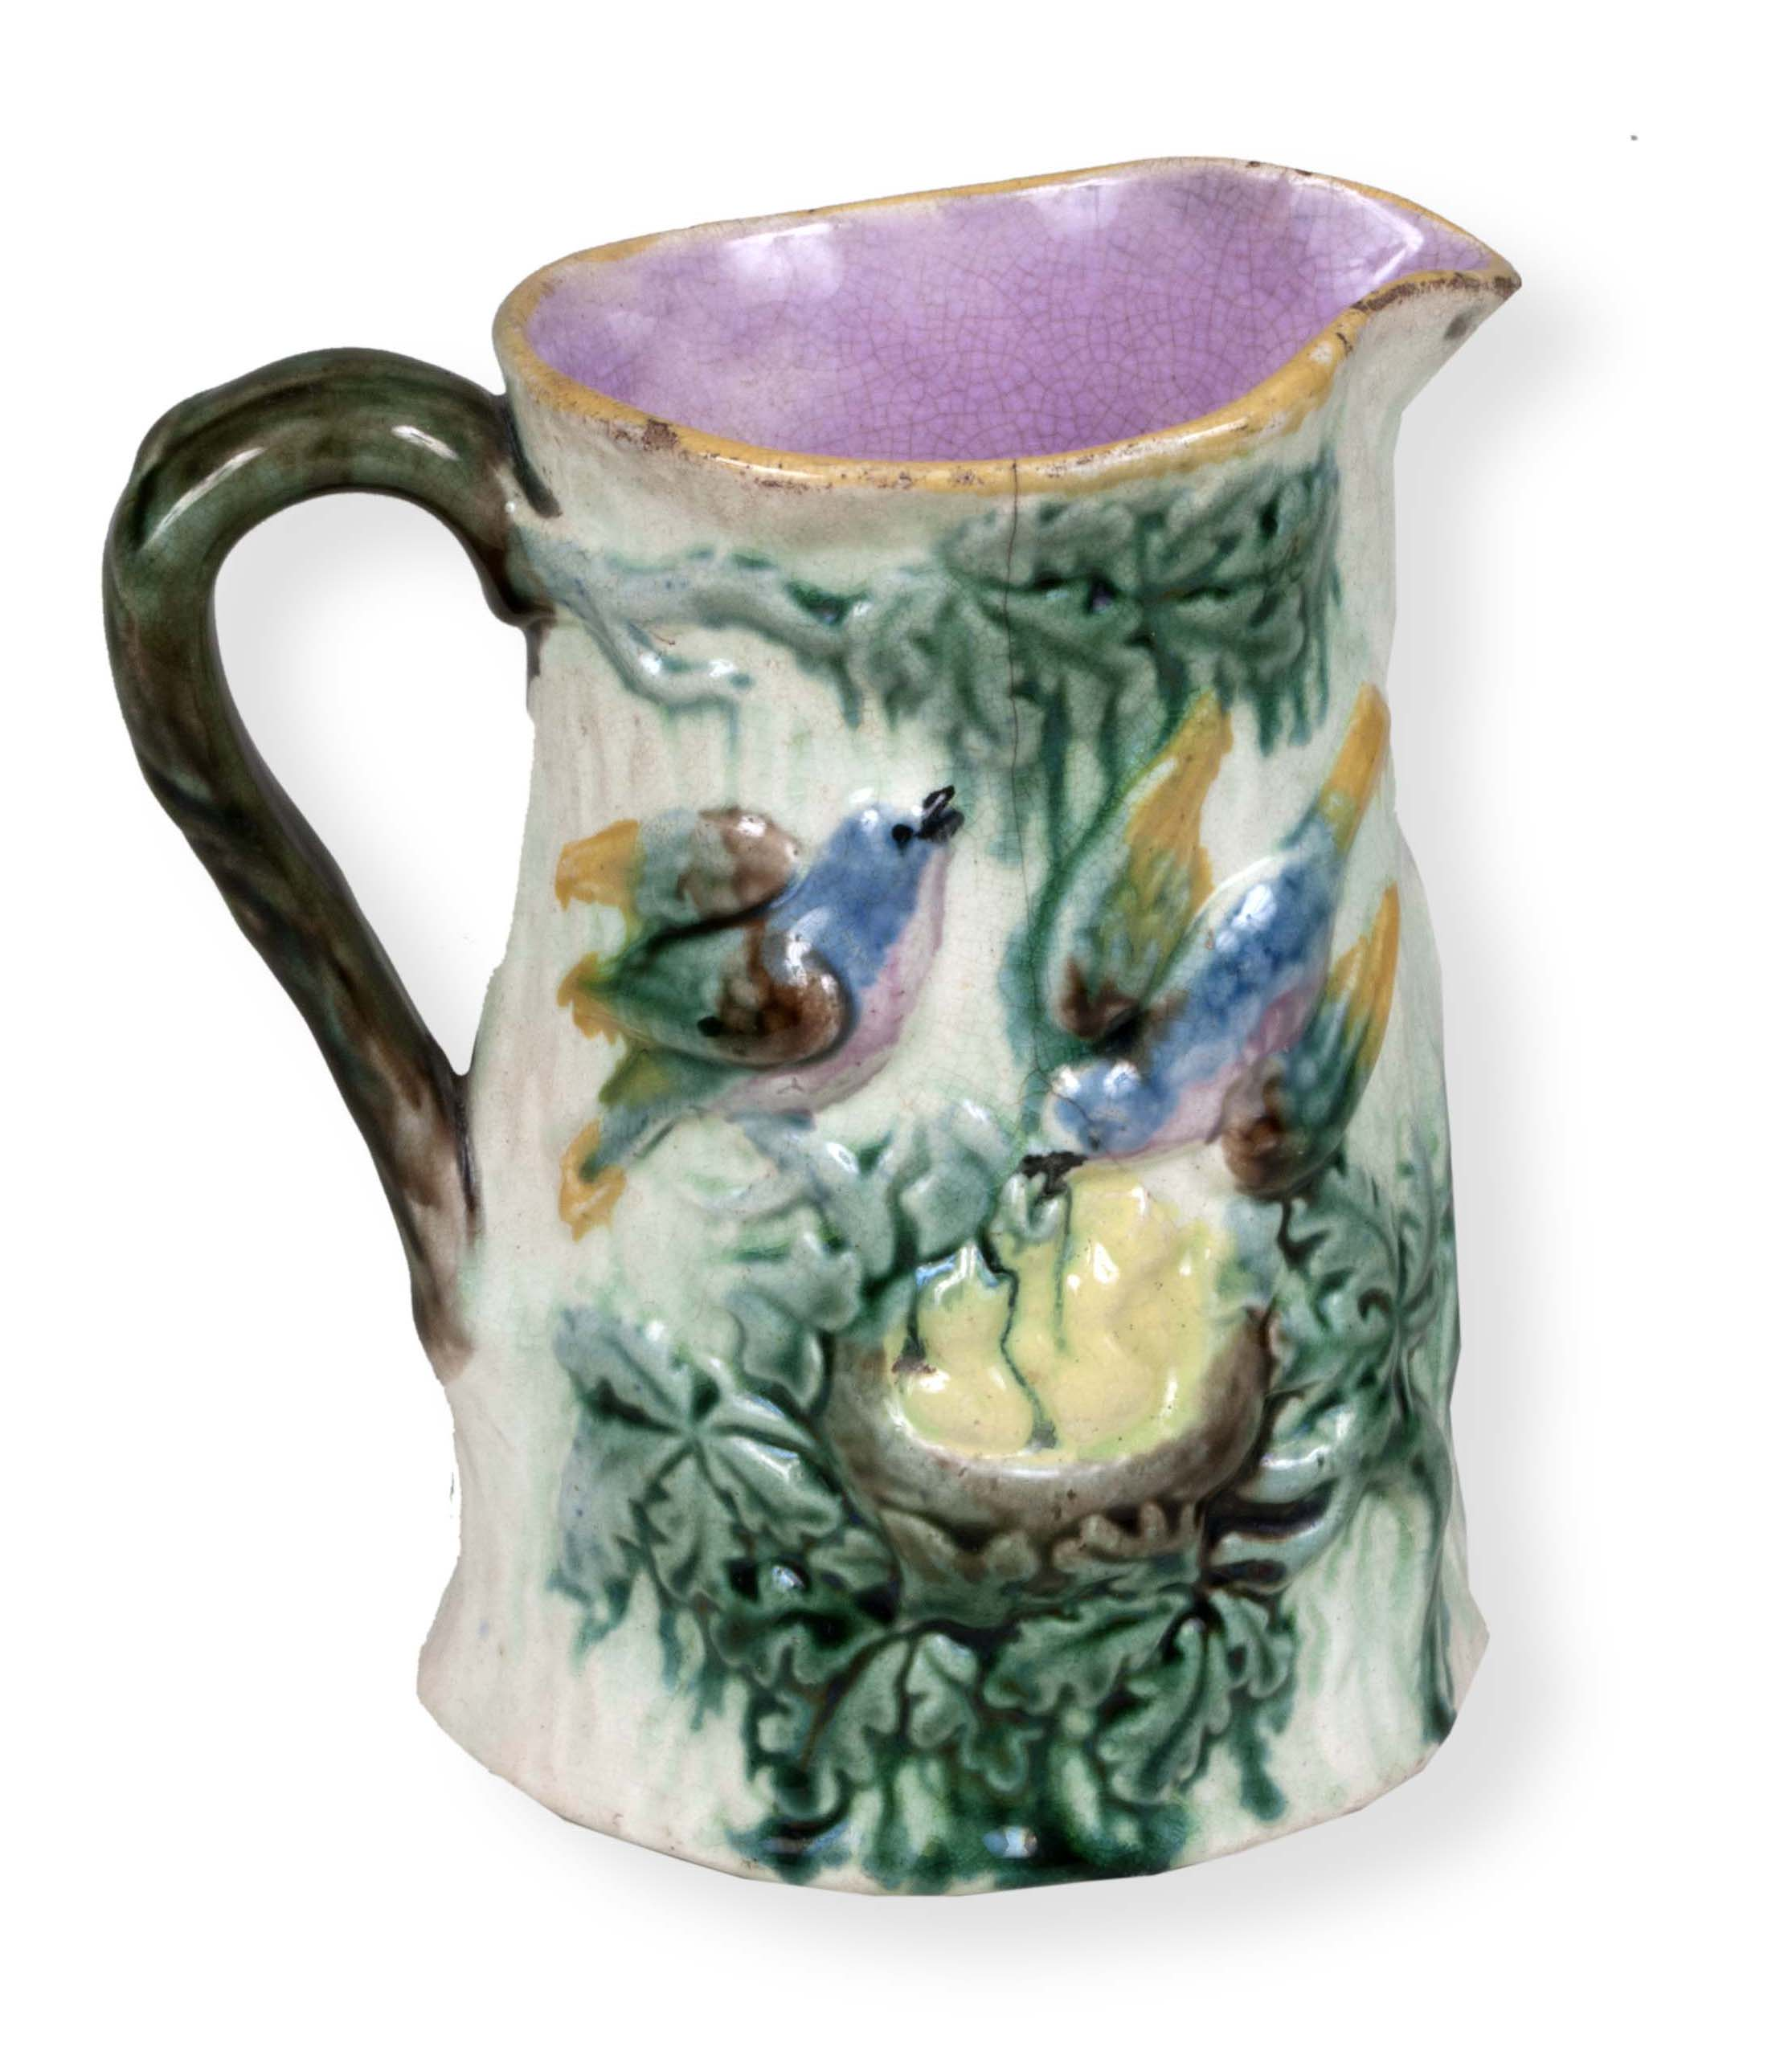 Glass pitcher with blue and pink birds